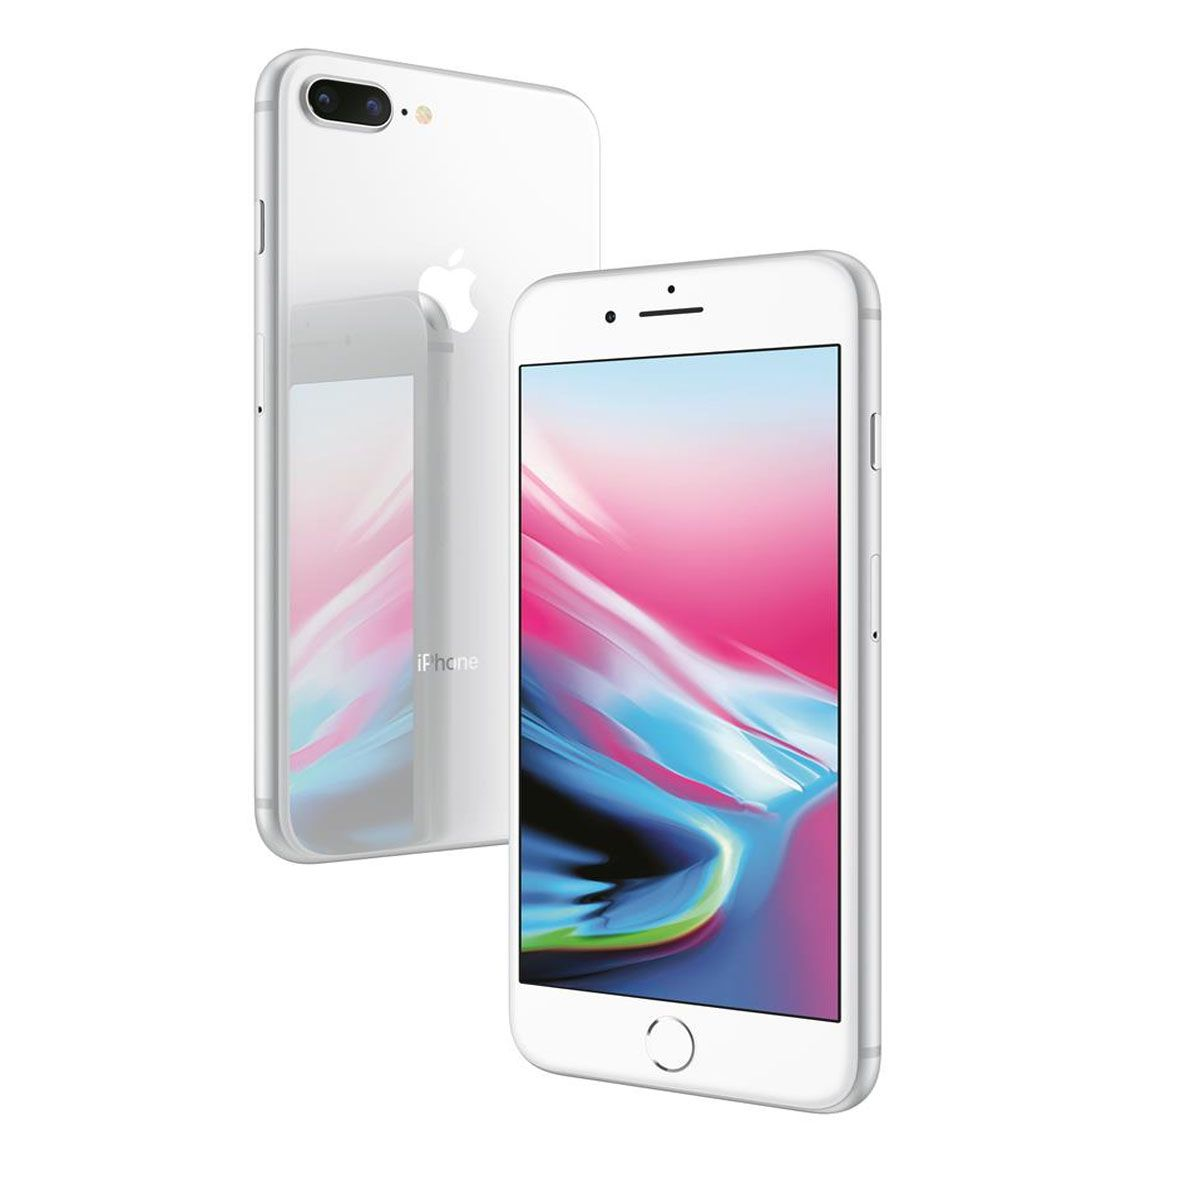 iPhone 8 Plus Apple 128GB Model 1897 Silver/Prata